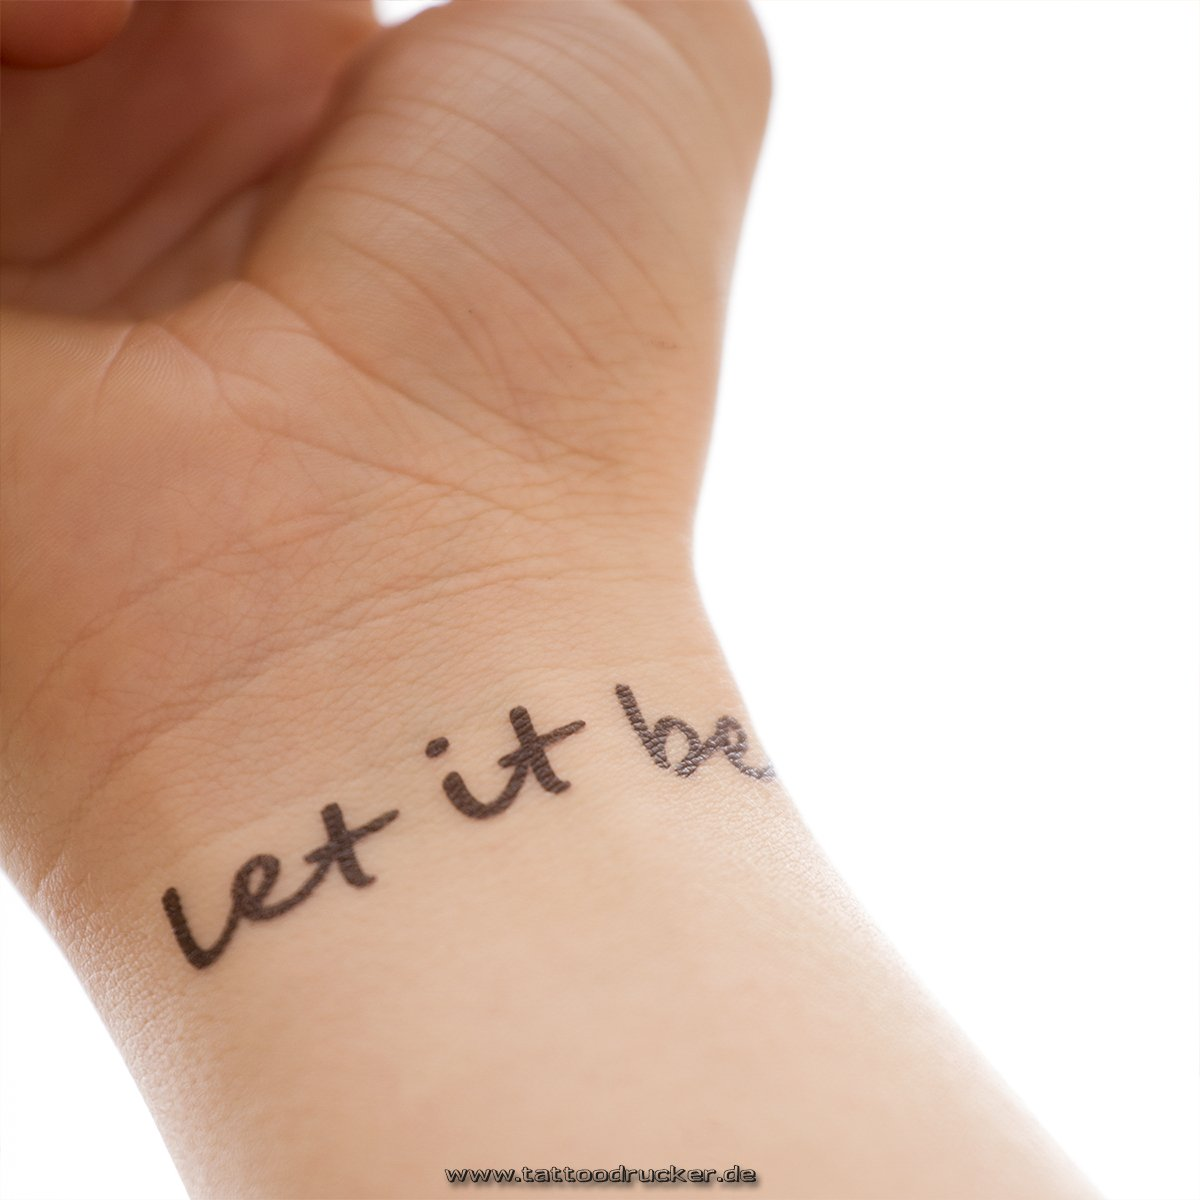 Let It Be – 2 Varios Tattoo Texto en negro – Cuerpo Tattoo, 1 x ...